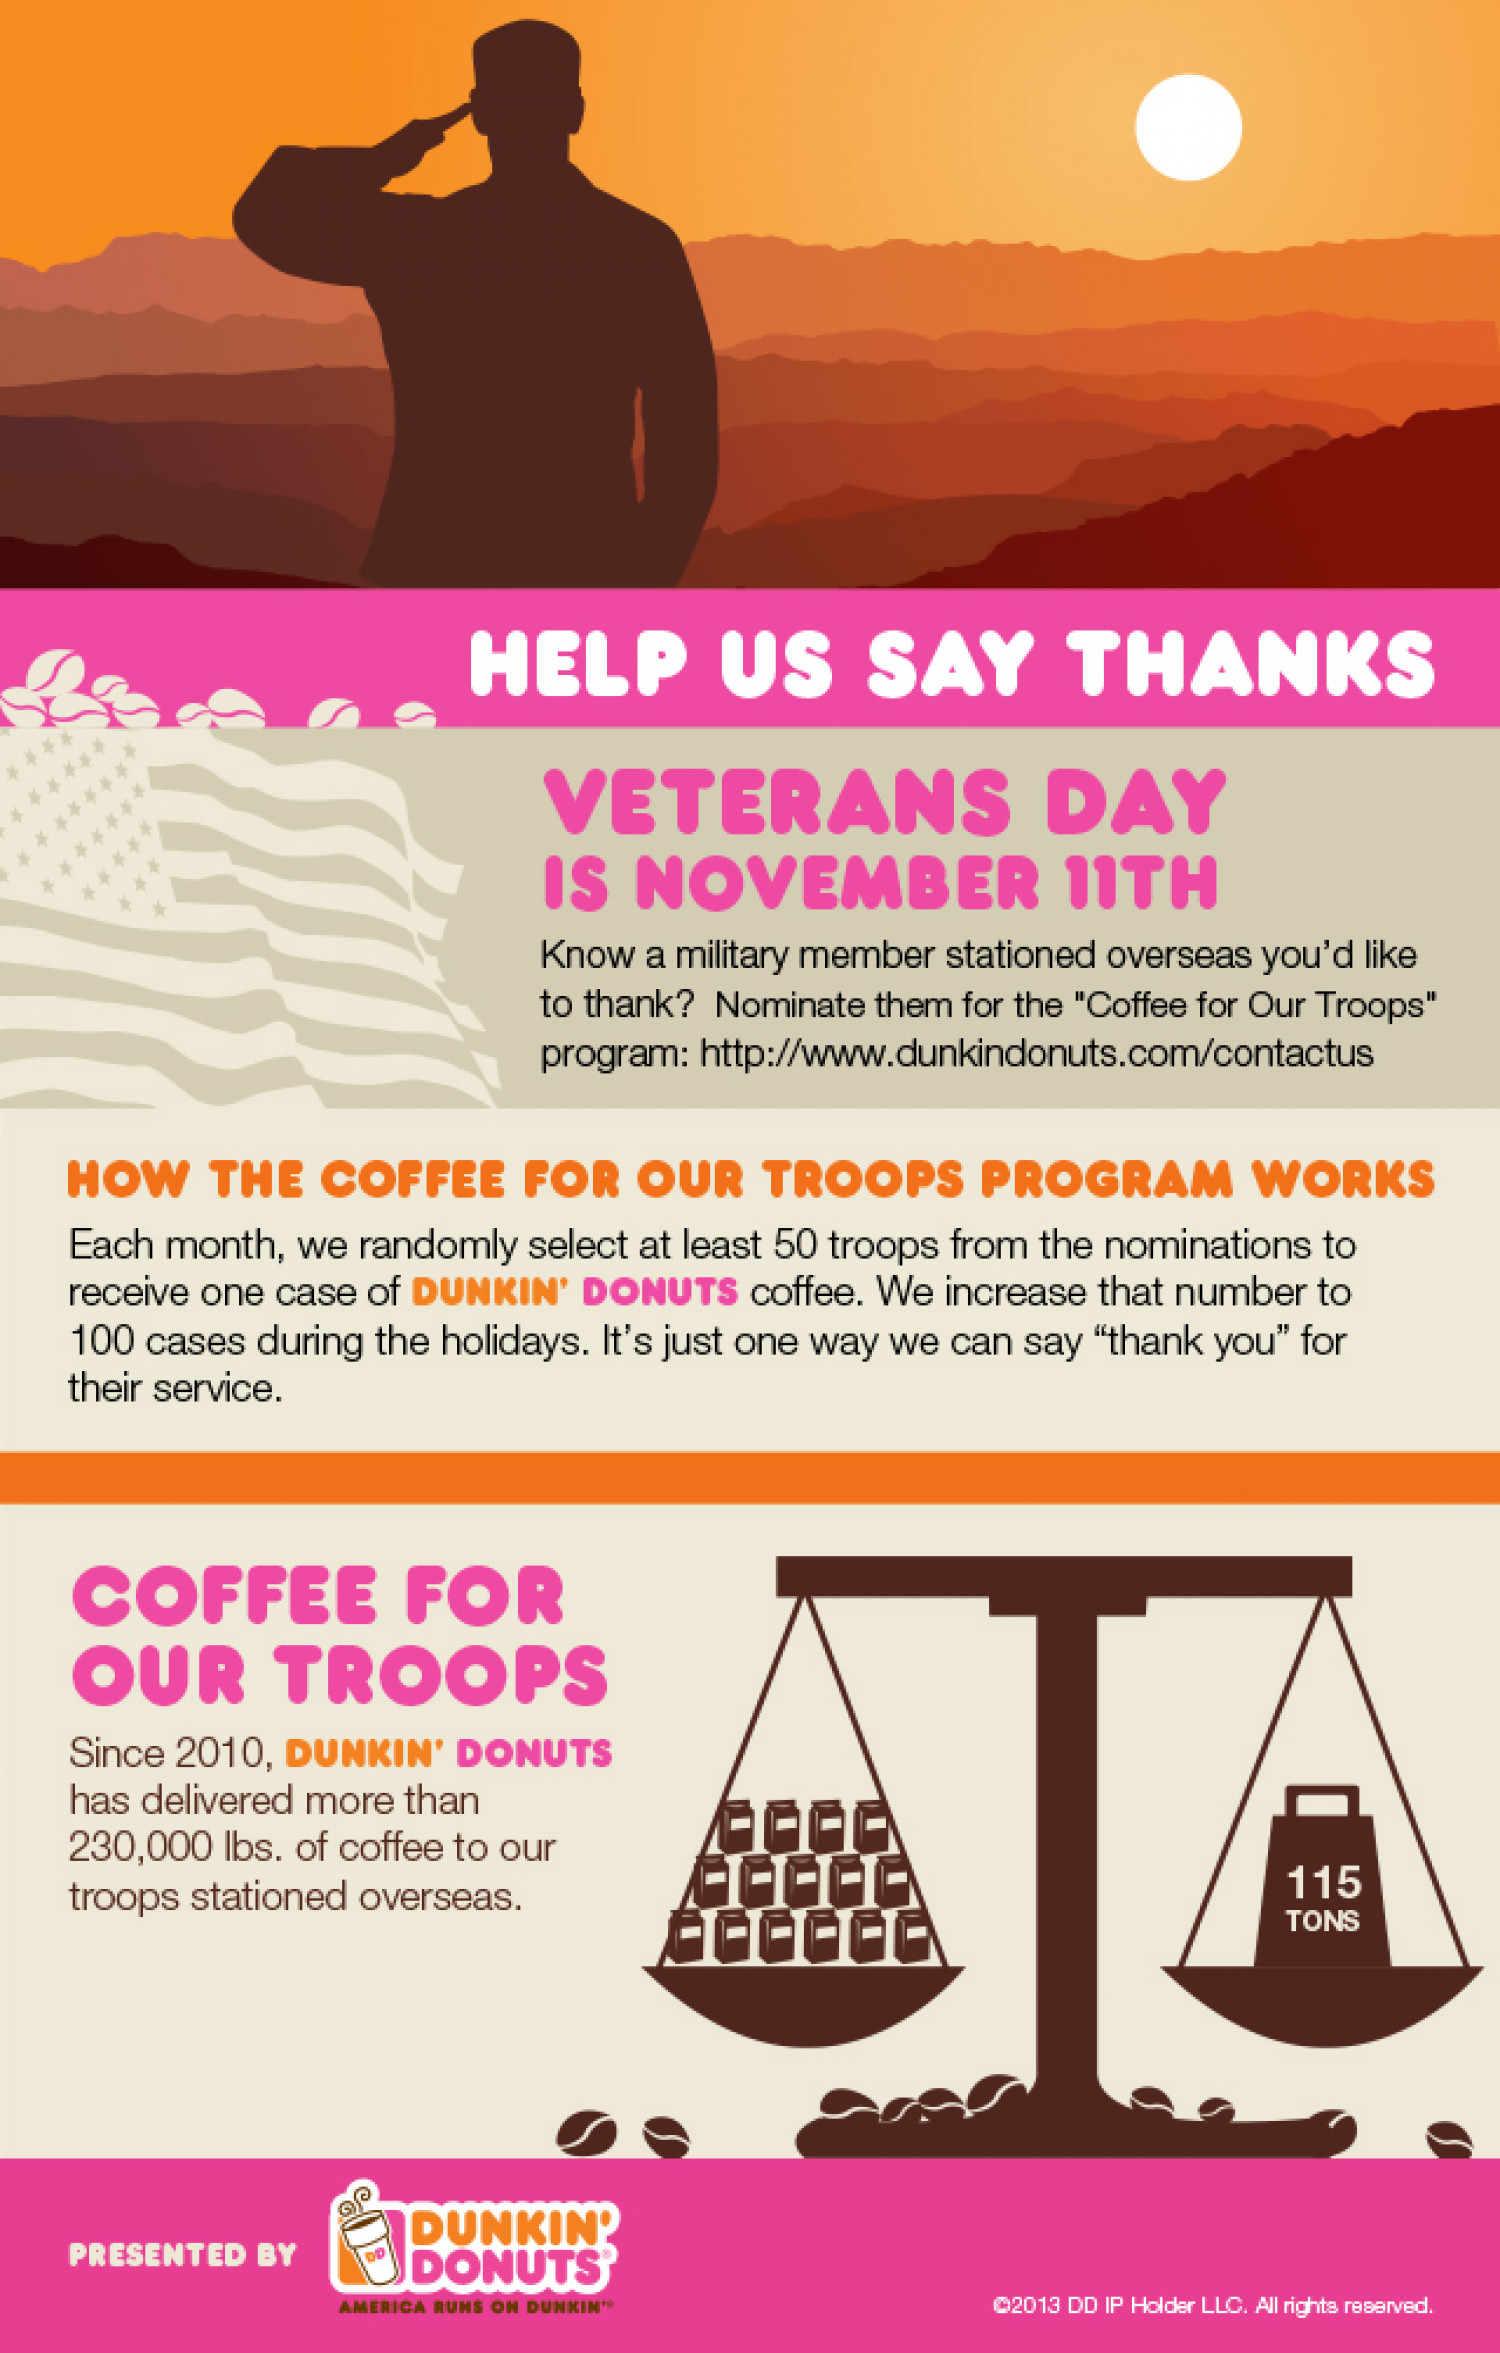 Dunkin Donuts - Veterans Day Infographic